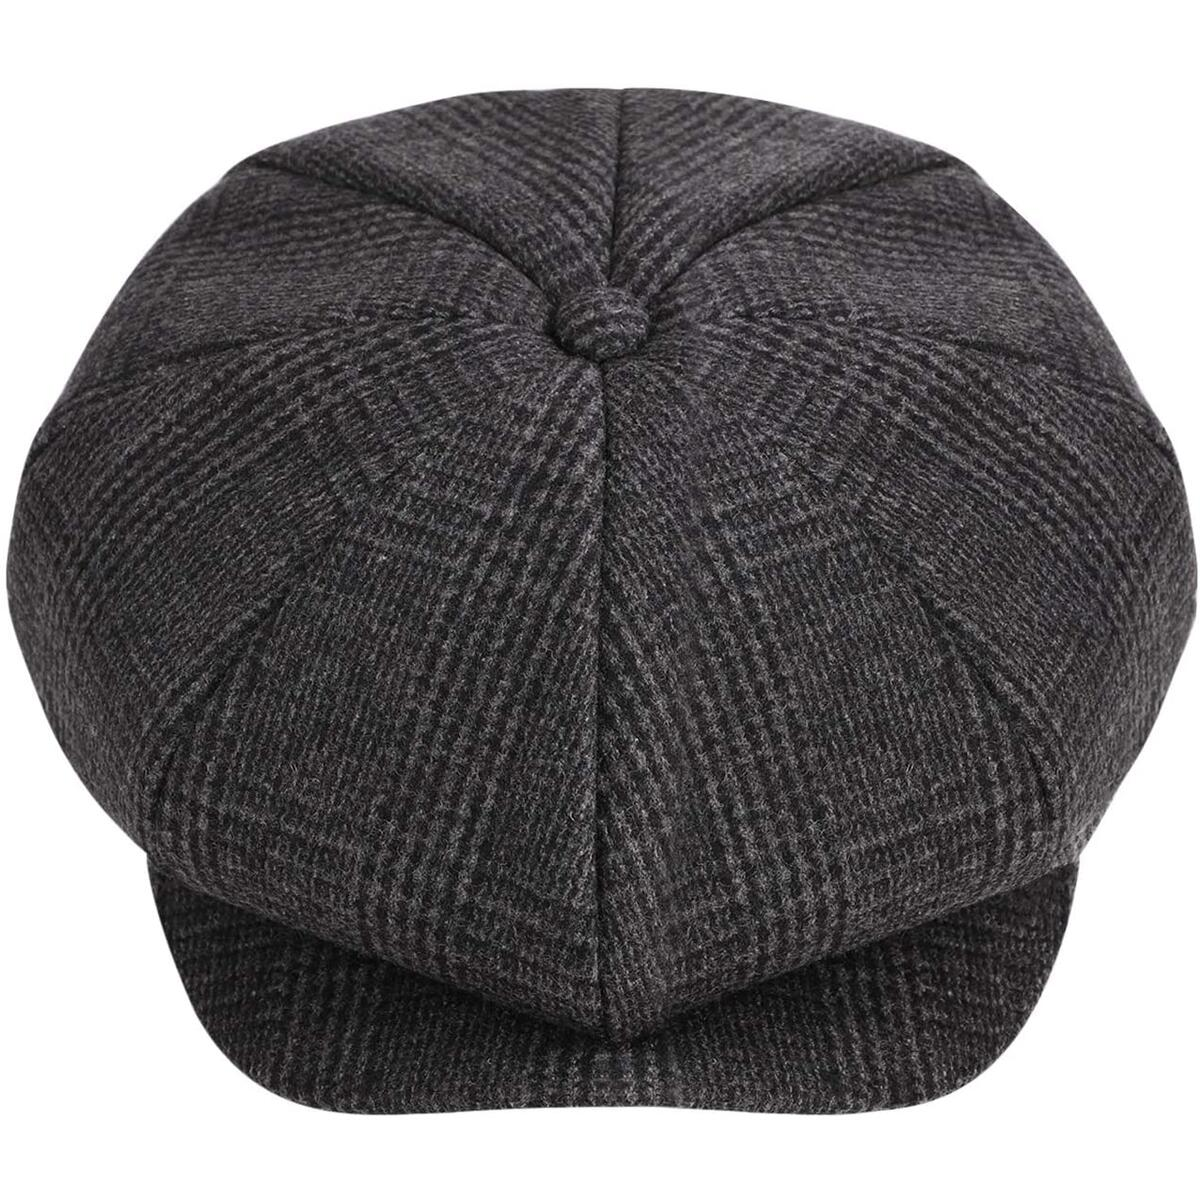 Men's Newsboy Cap Gatsby Hat Wool Blend French Cabbie Hat Beret Hat Fedora Gray